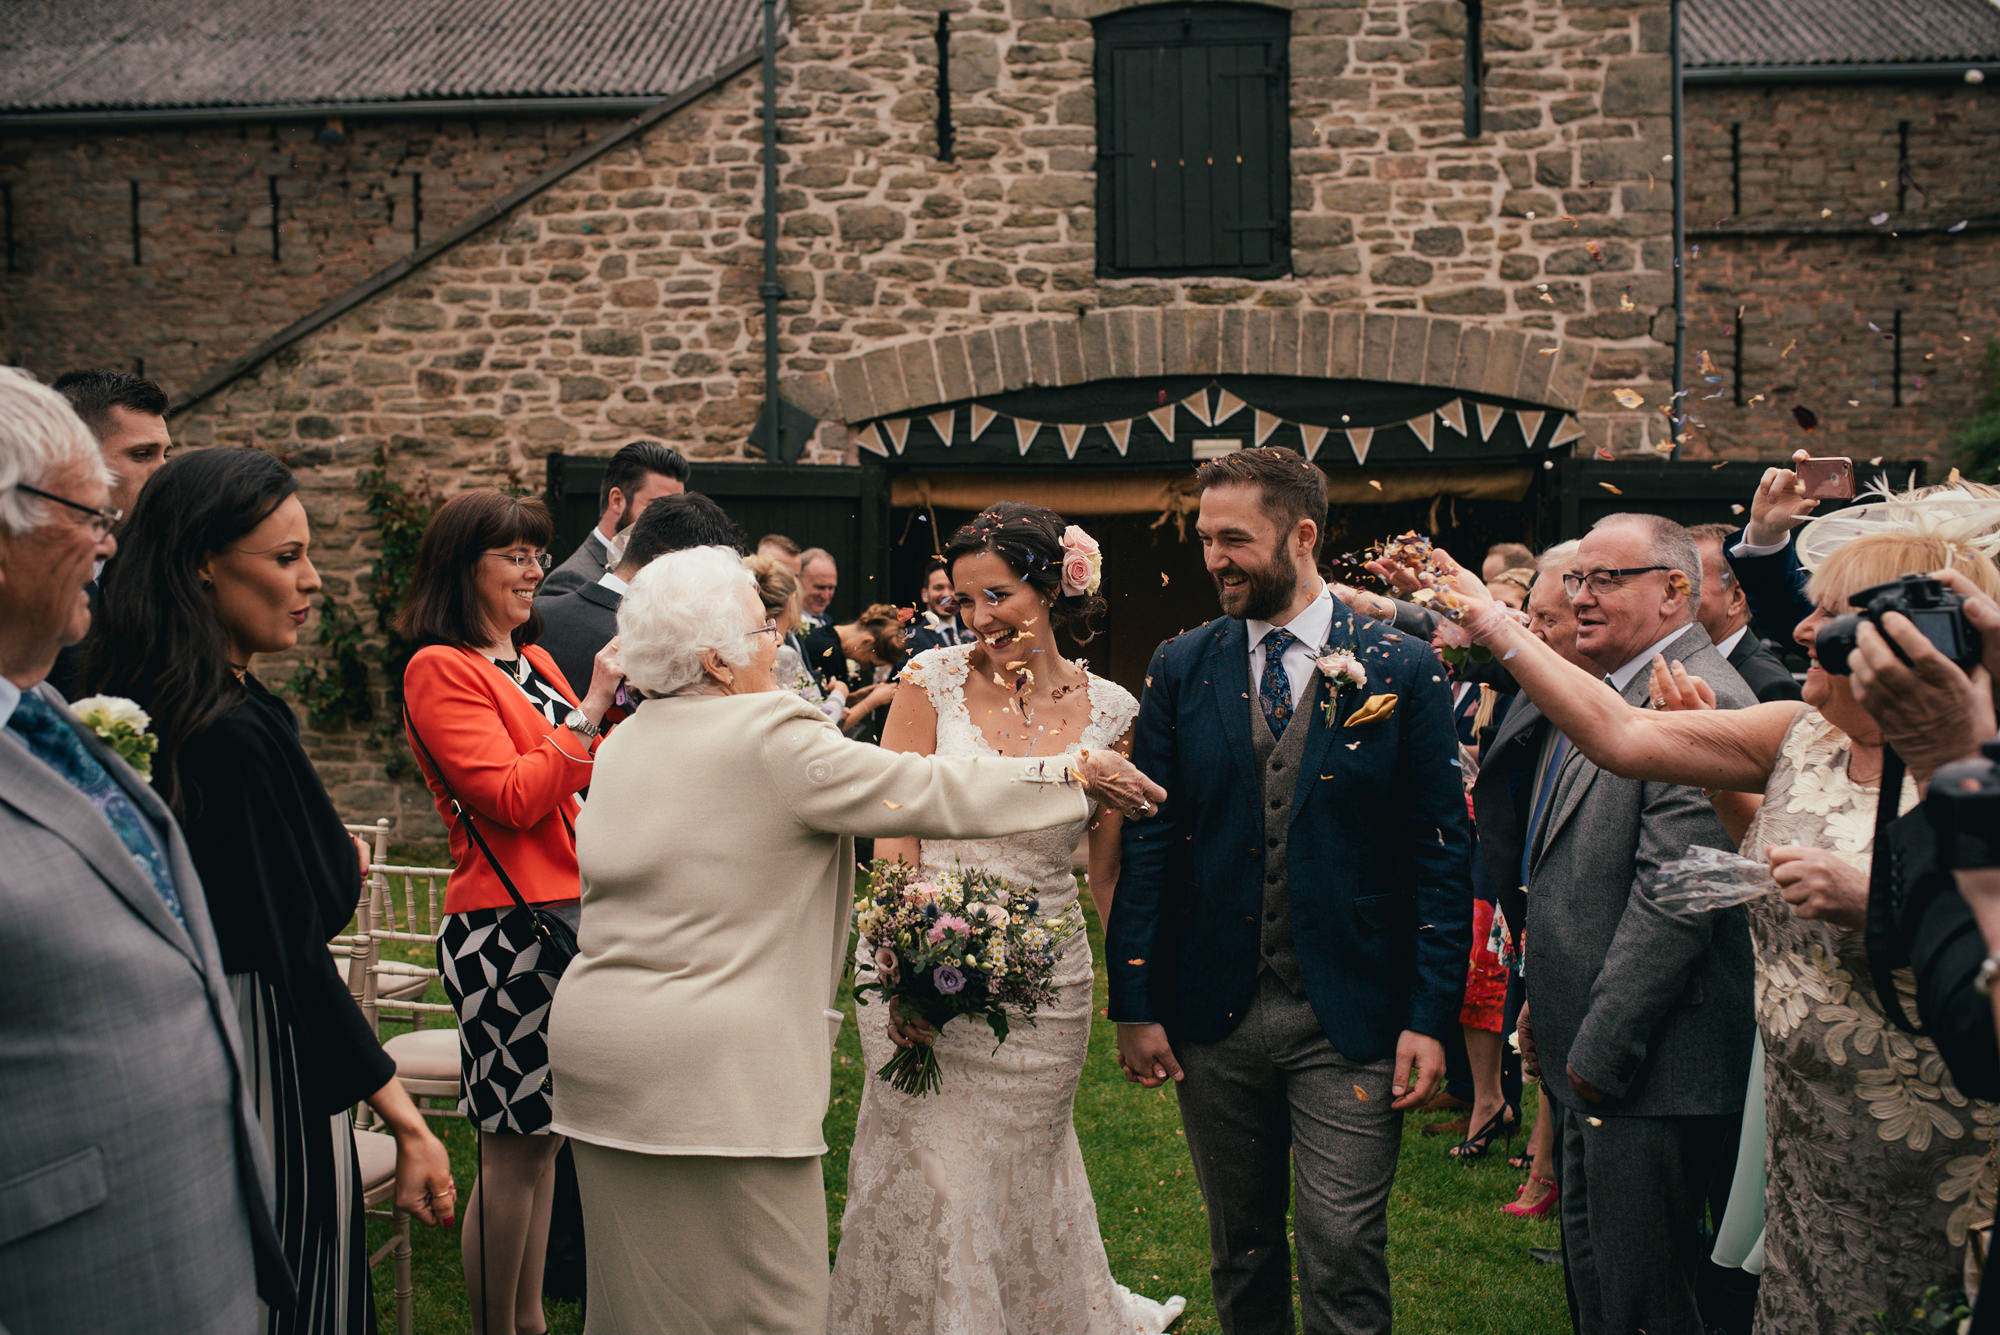 Lyde Court wedding Photographer47